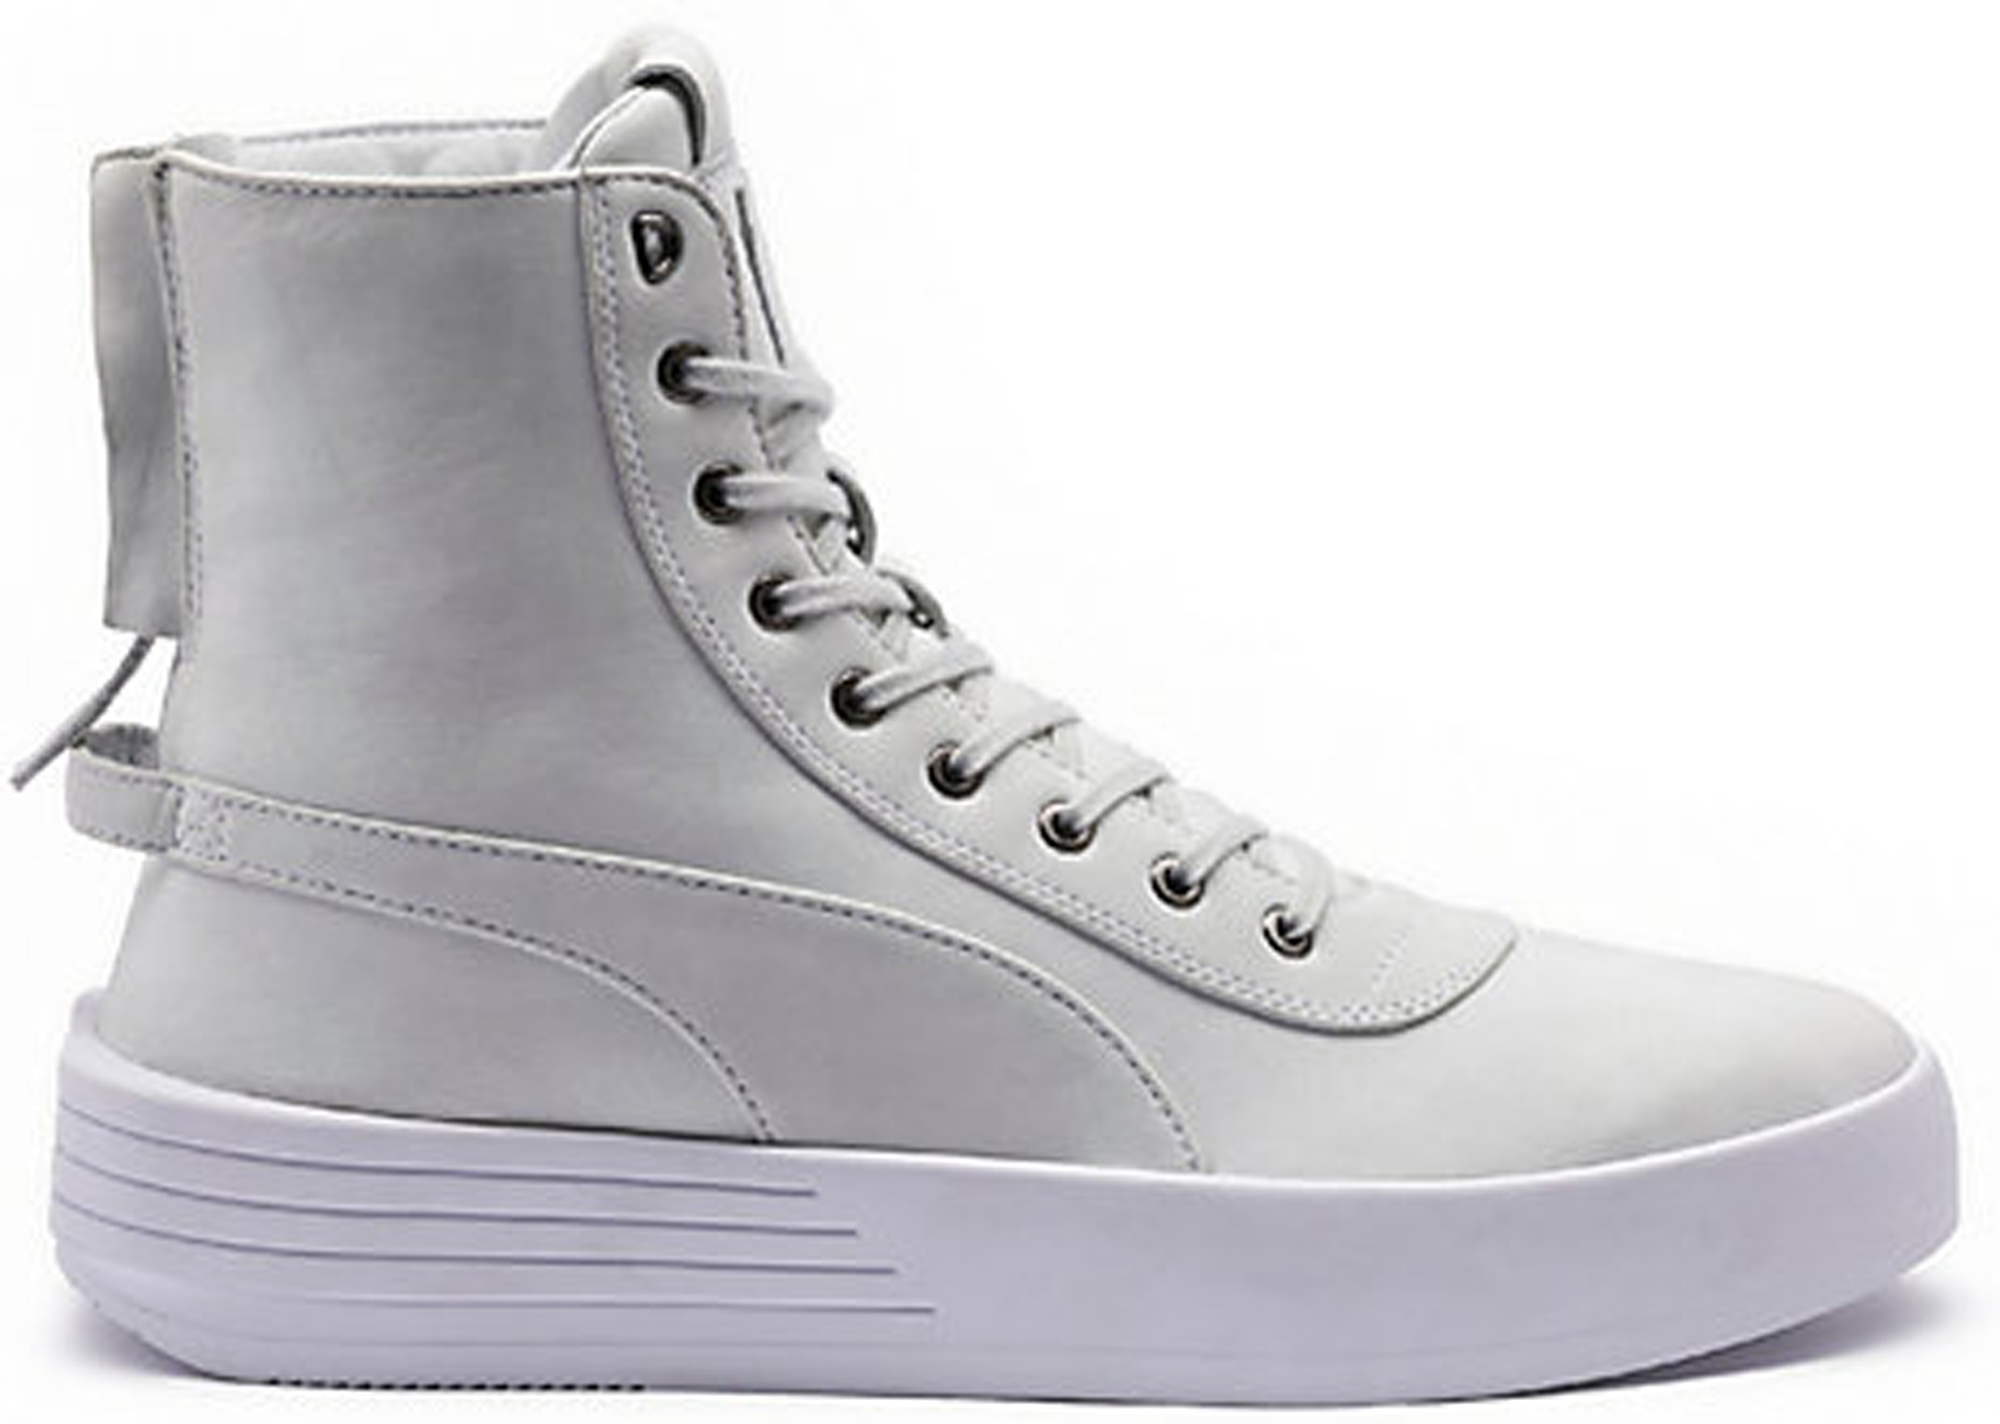 Puma Parallel The Weeknd Marshmallow